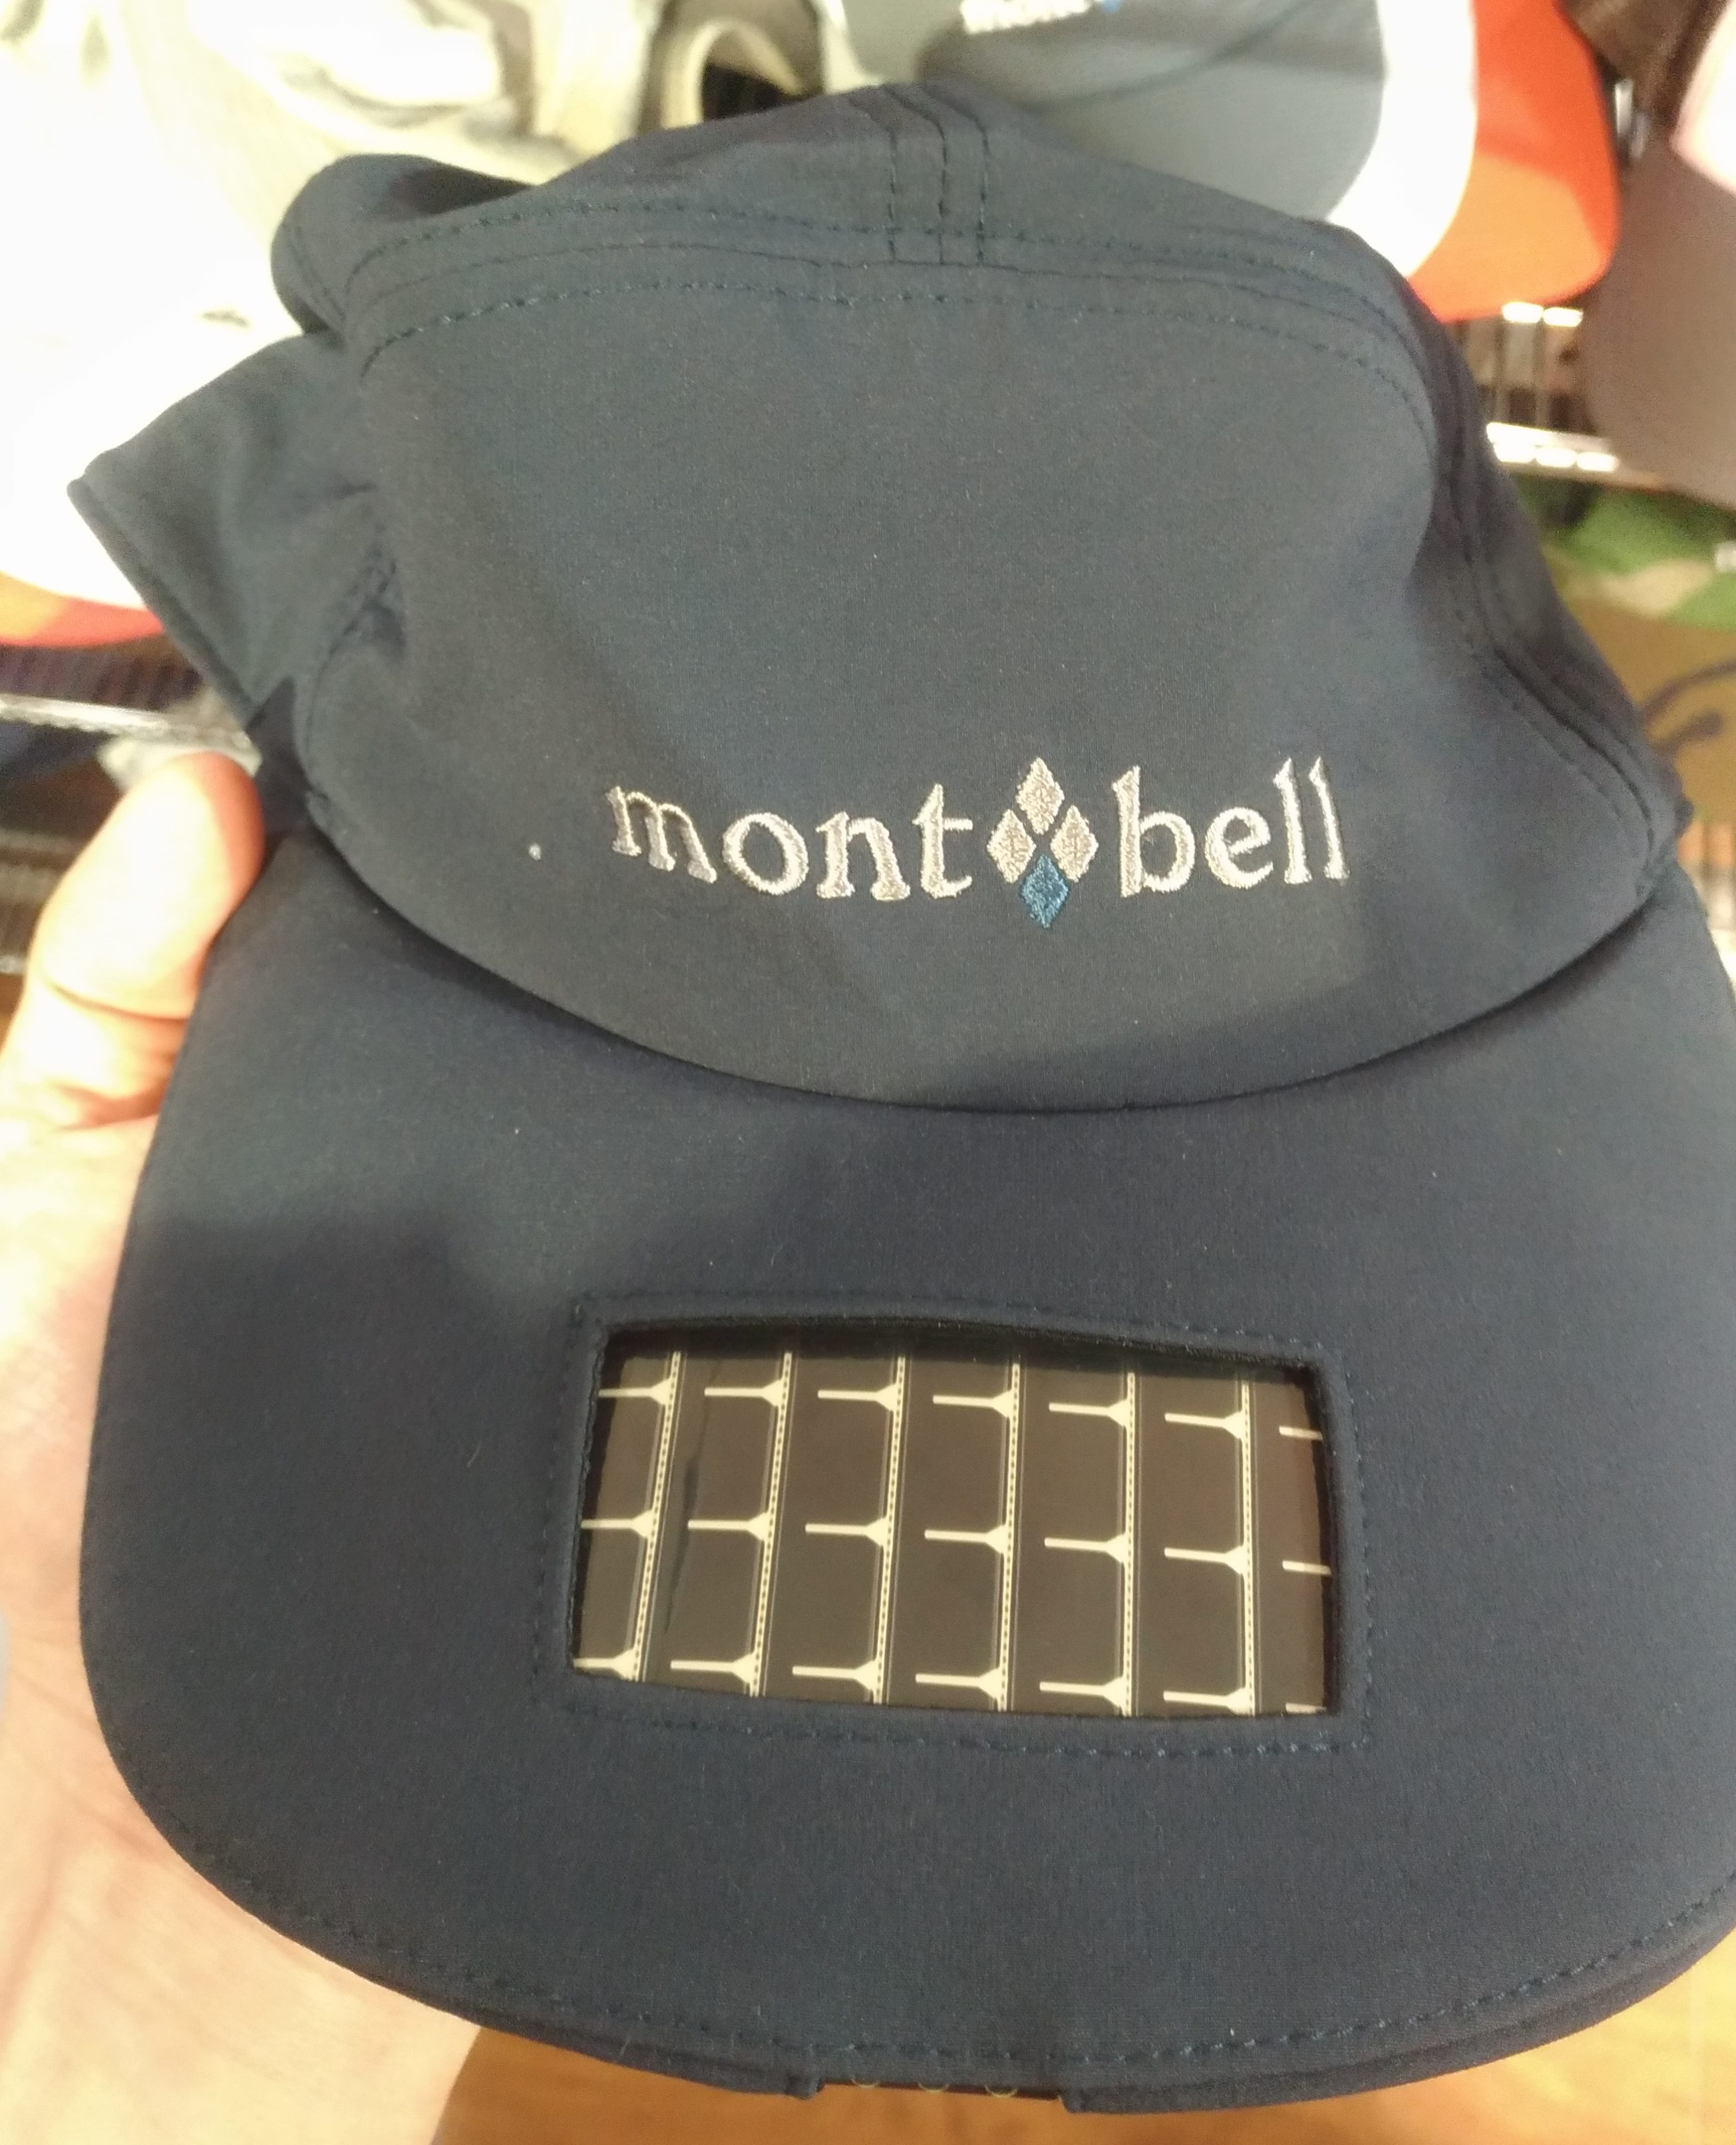 montbellのソーラーキャップがおもしろい